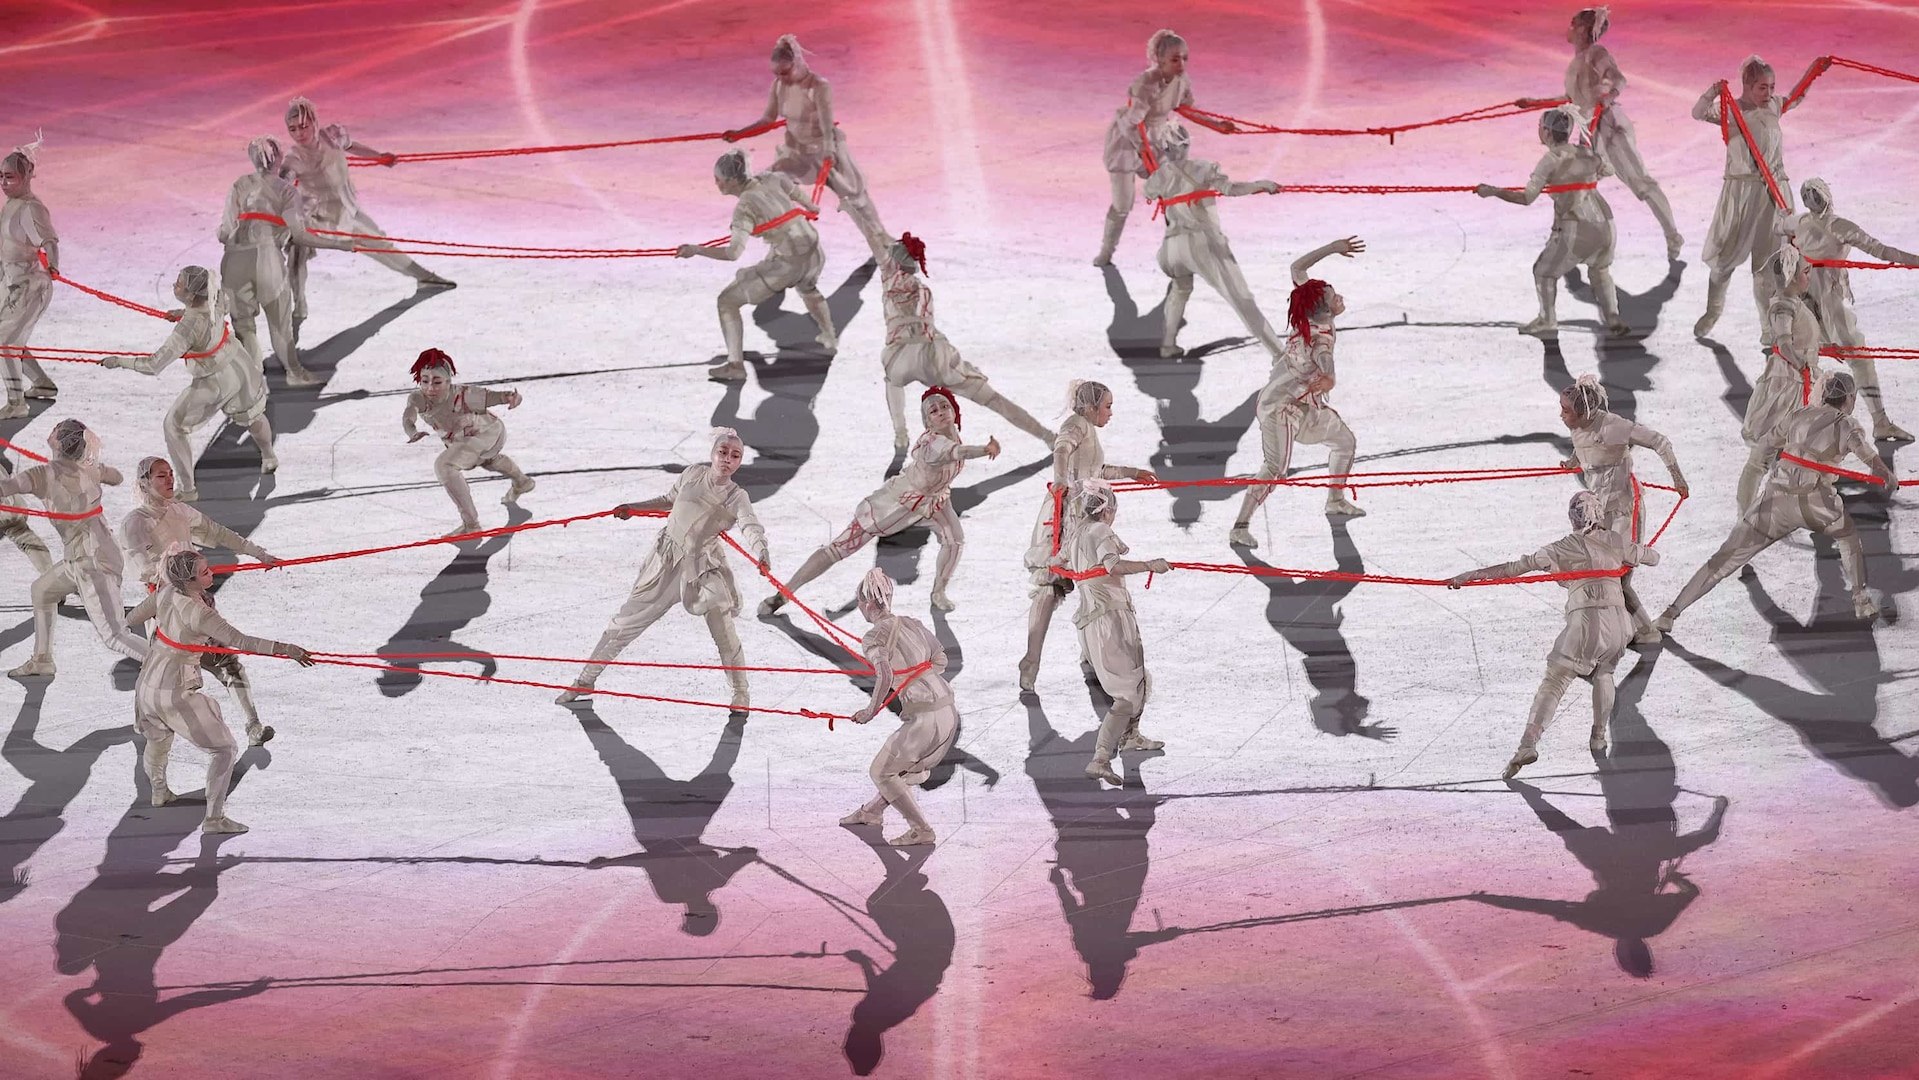 Dancing performance during the opening sequence of the 2020 Tokyo Olympic Games